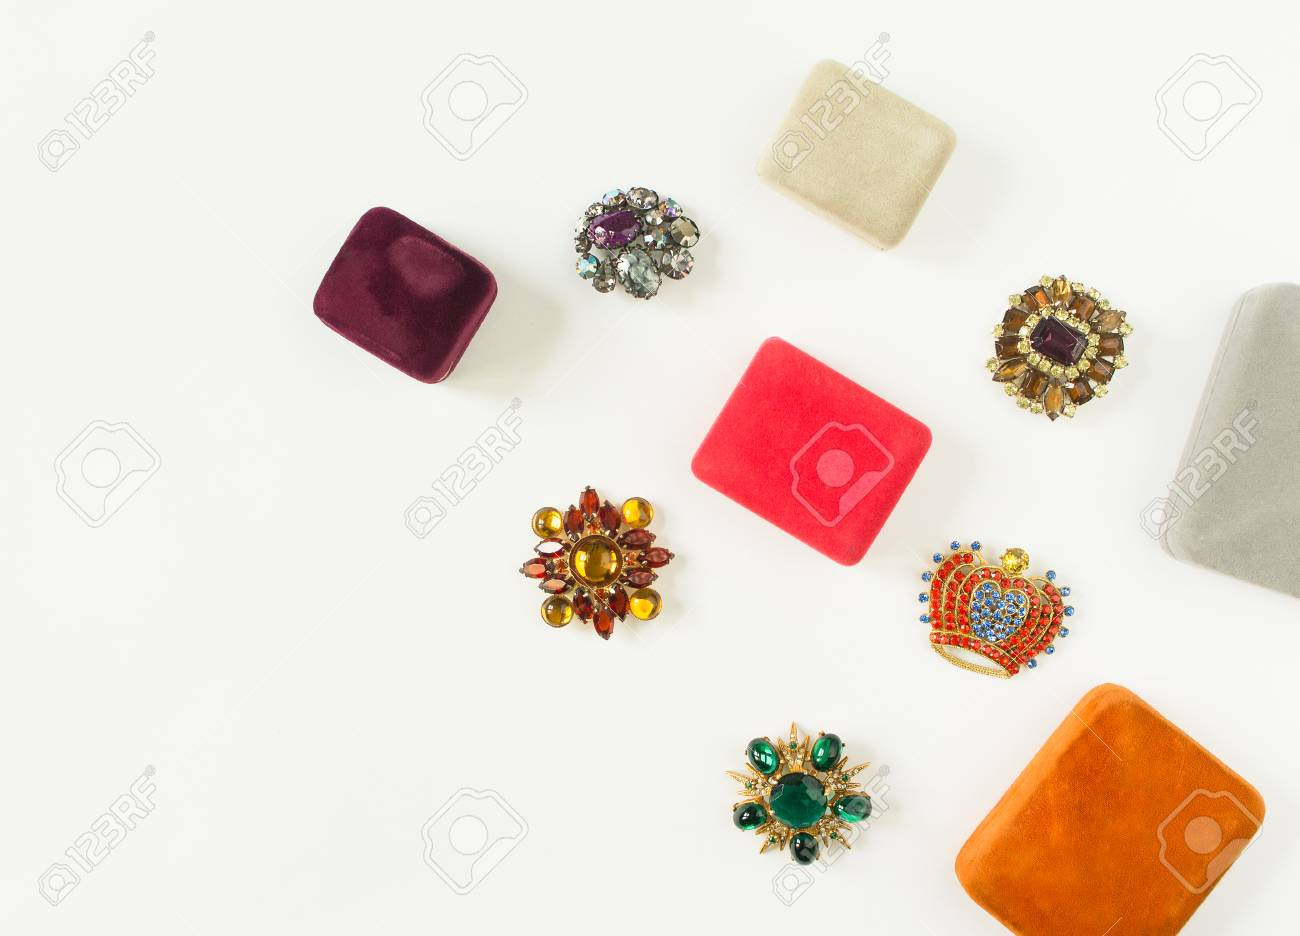 Stock Photo - Woman's Jewelry. Vintage jewelry background. Beautiful bright  rhinestone brooches and jewelry boxes on white background.